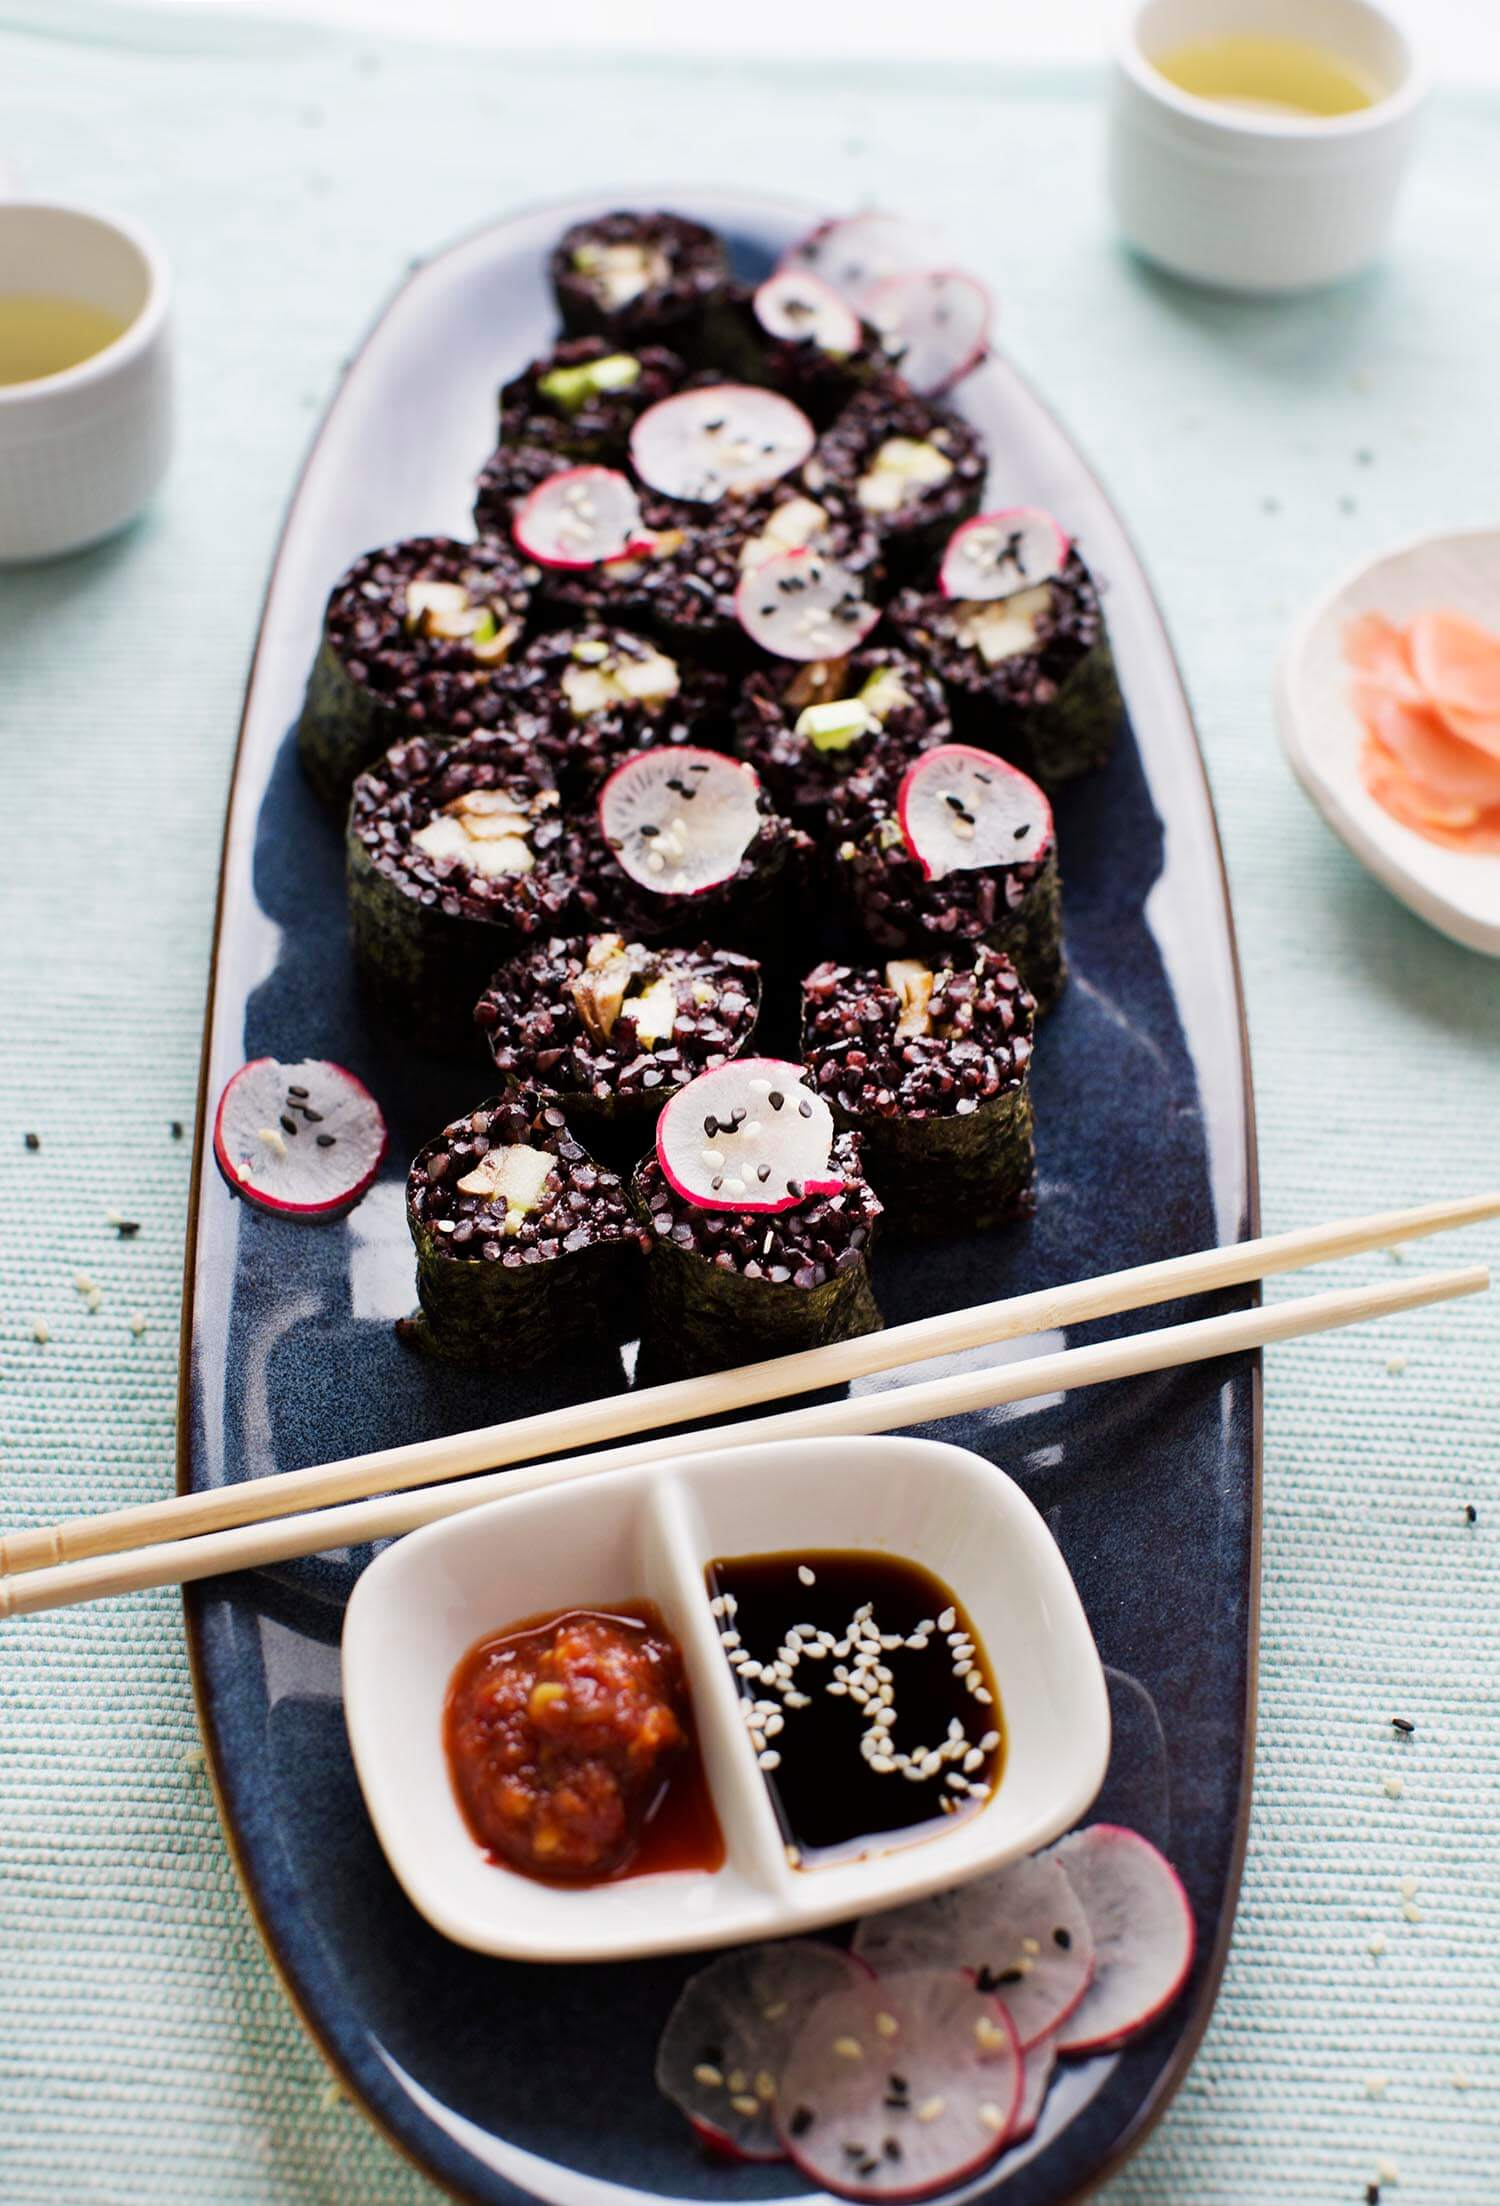 Smoky Mushroom and Black Rice Sushi (via abeautifulmess.com)